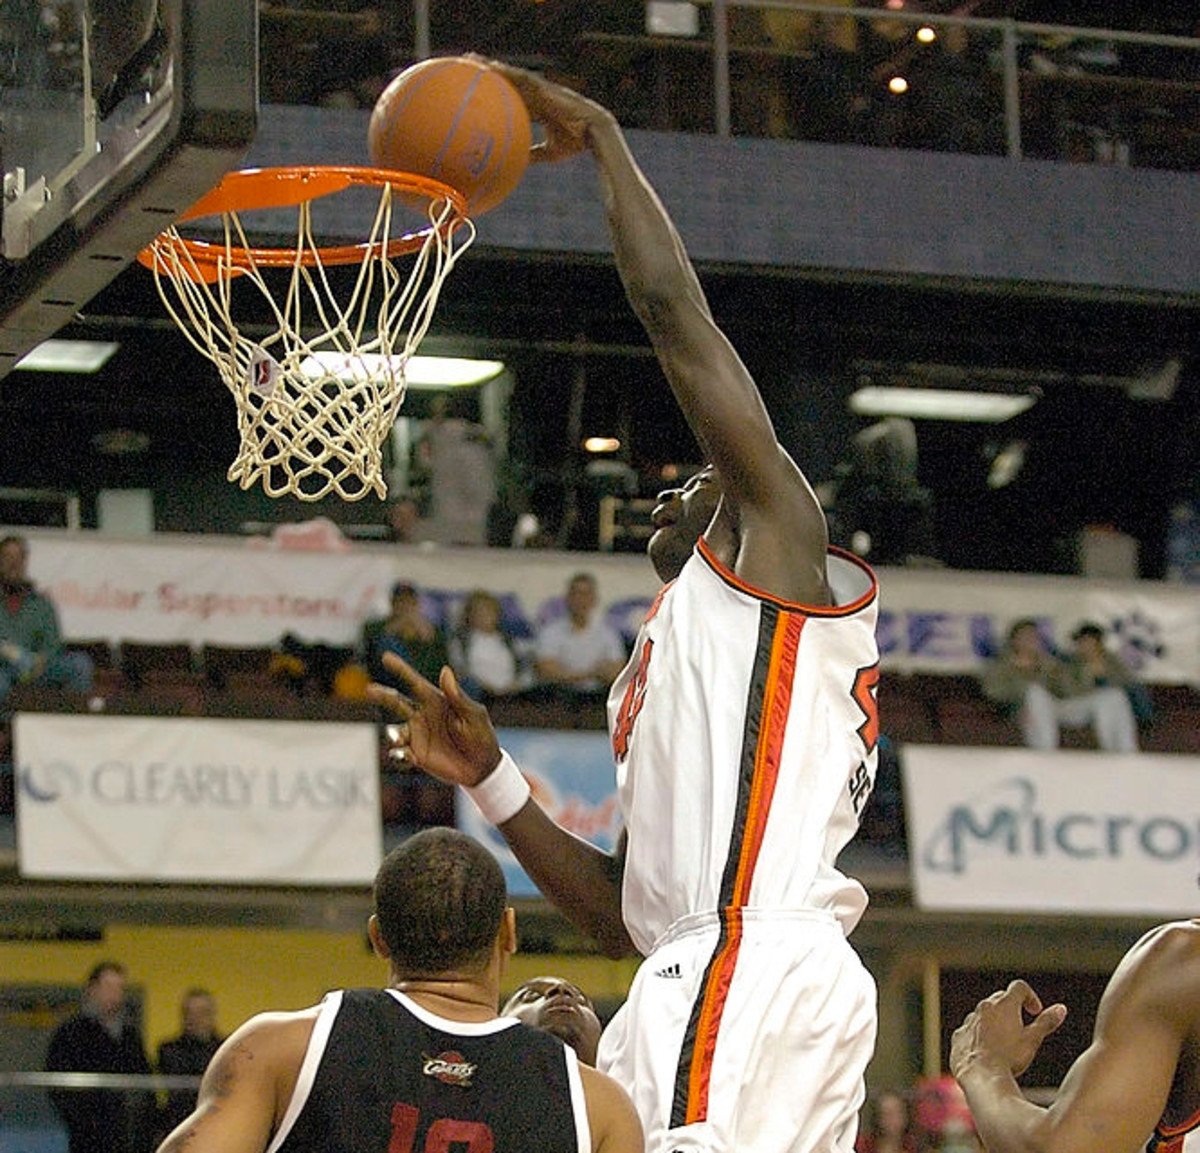 Sene first played for the Senegal national basketball team during the 2013 AfroBasket.